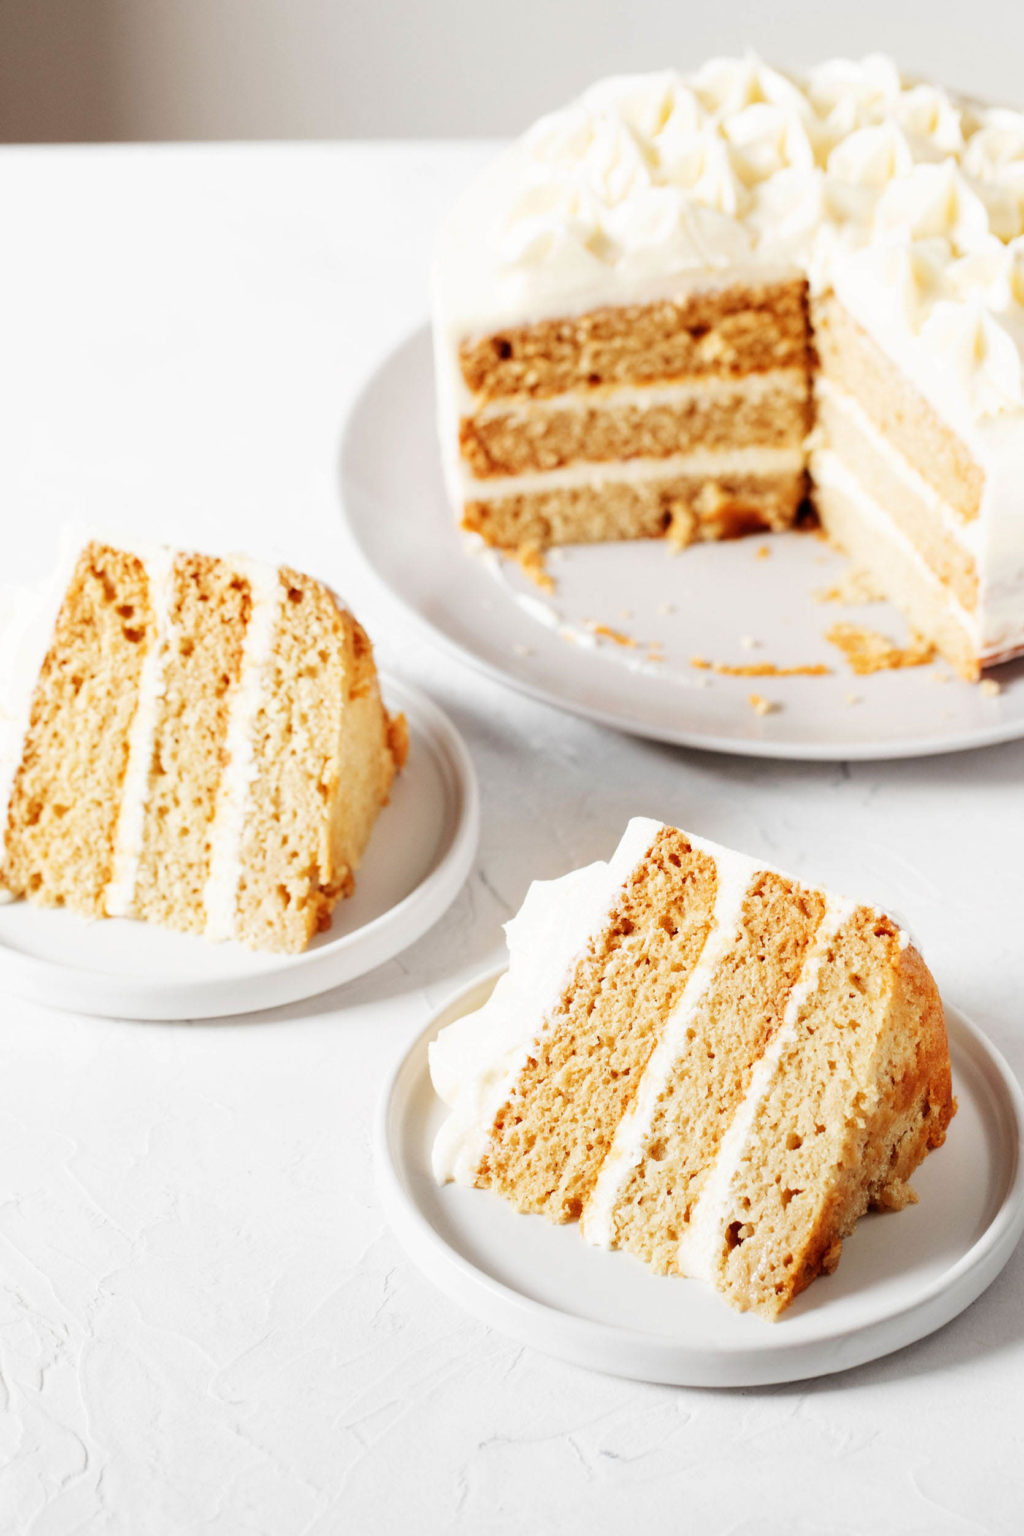 A pale yellow layer cake with whipped, white buttercream frosting has had slices cut out. Two slices rest on small dessert plates on top of the cake, all on top of a white surface.